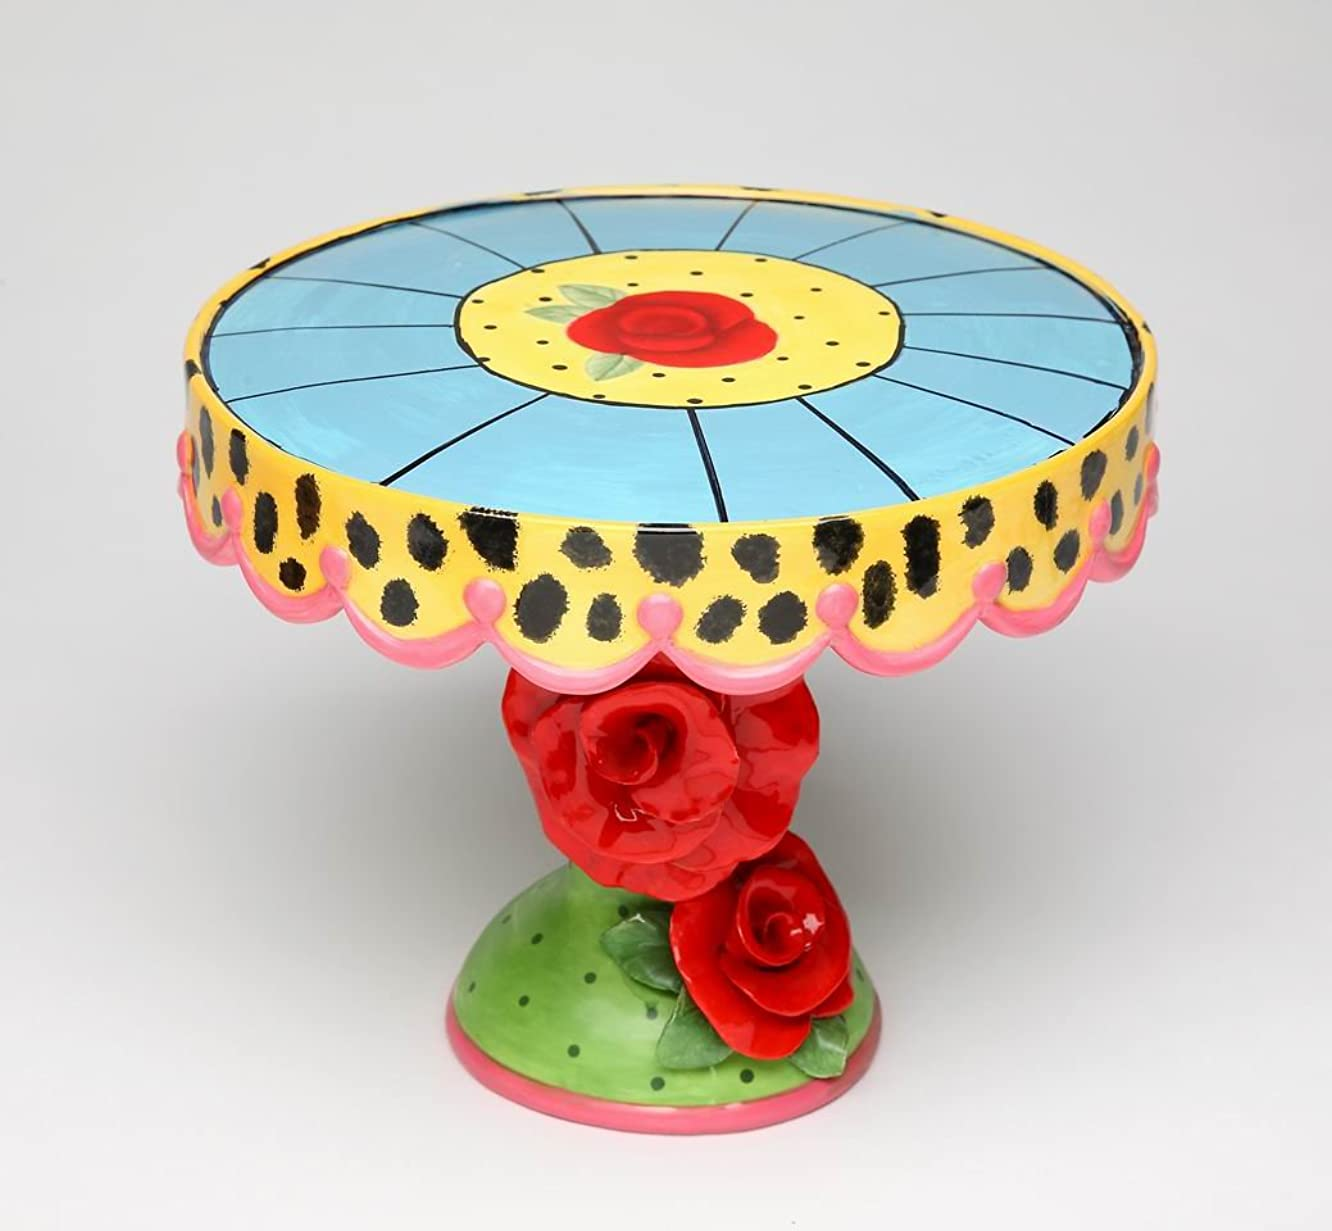 Fine Ceramic Red Roses with Leopard Prints Design Cake Stand, 9